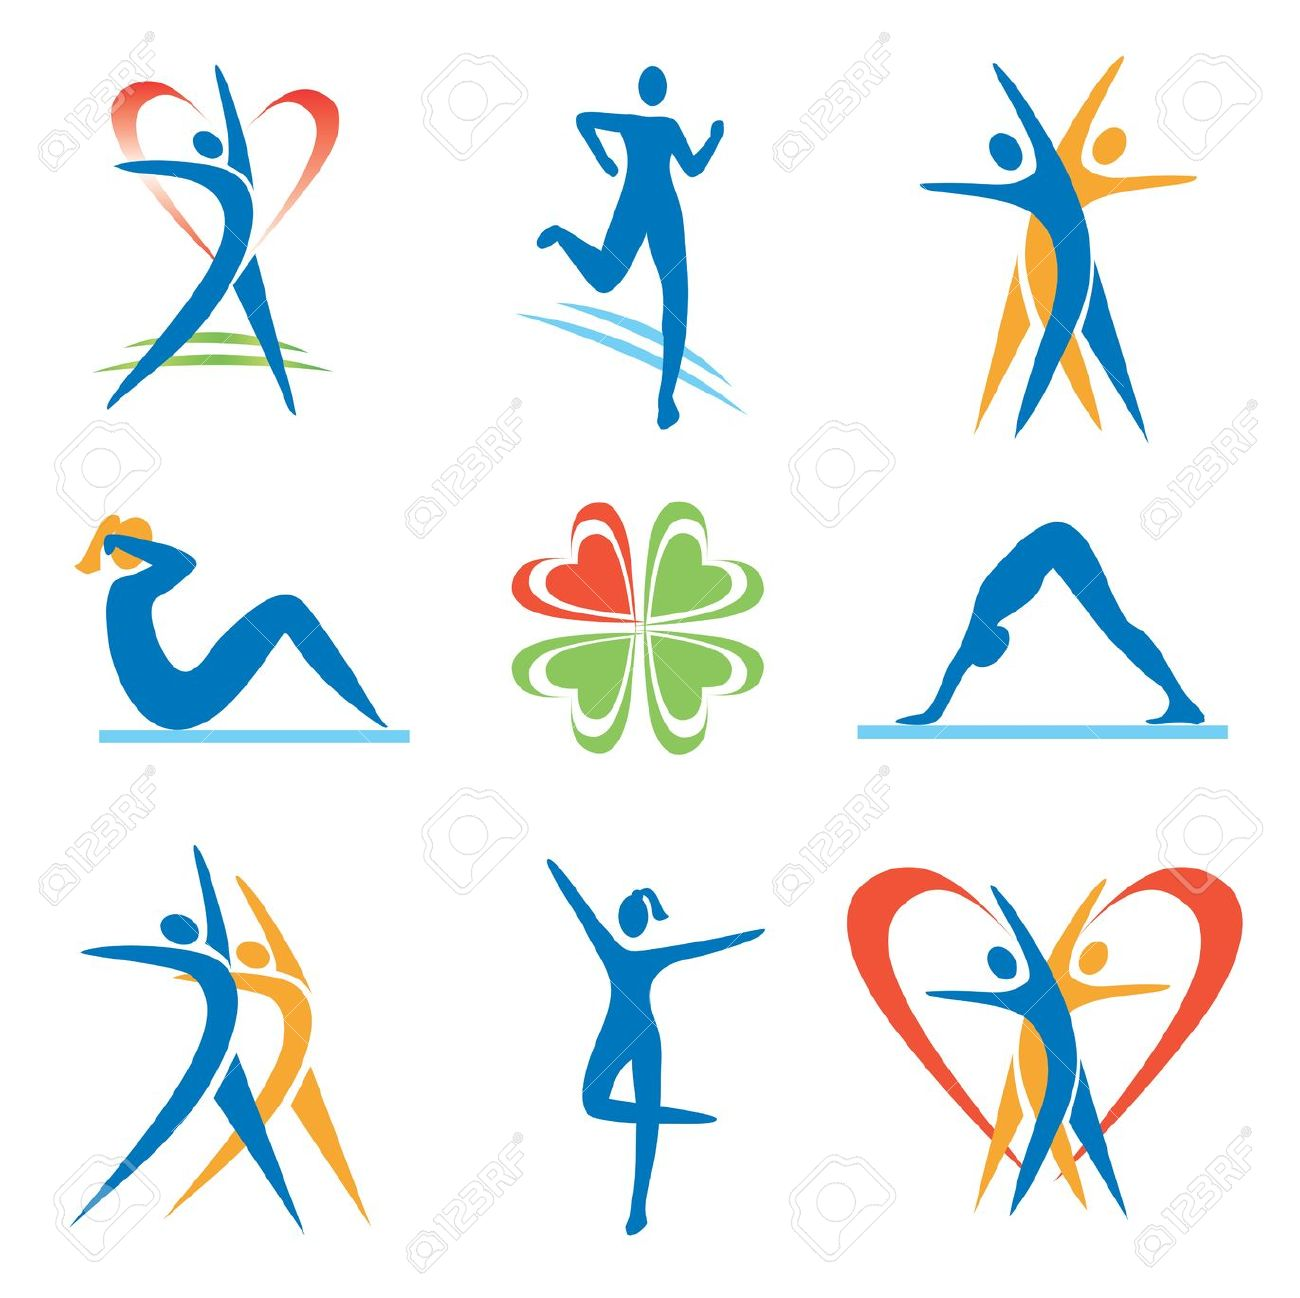 http://previews.123rf.com/images/chachar/chachar1303/chachar130300002/18462296-Icons-with-fitness-and-healthy-lifestyle-activities-Vector-illustration-Stock-Vector.jpg